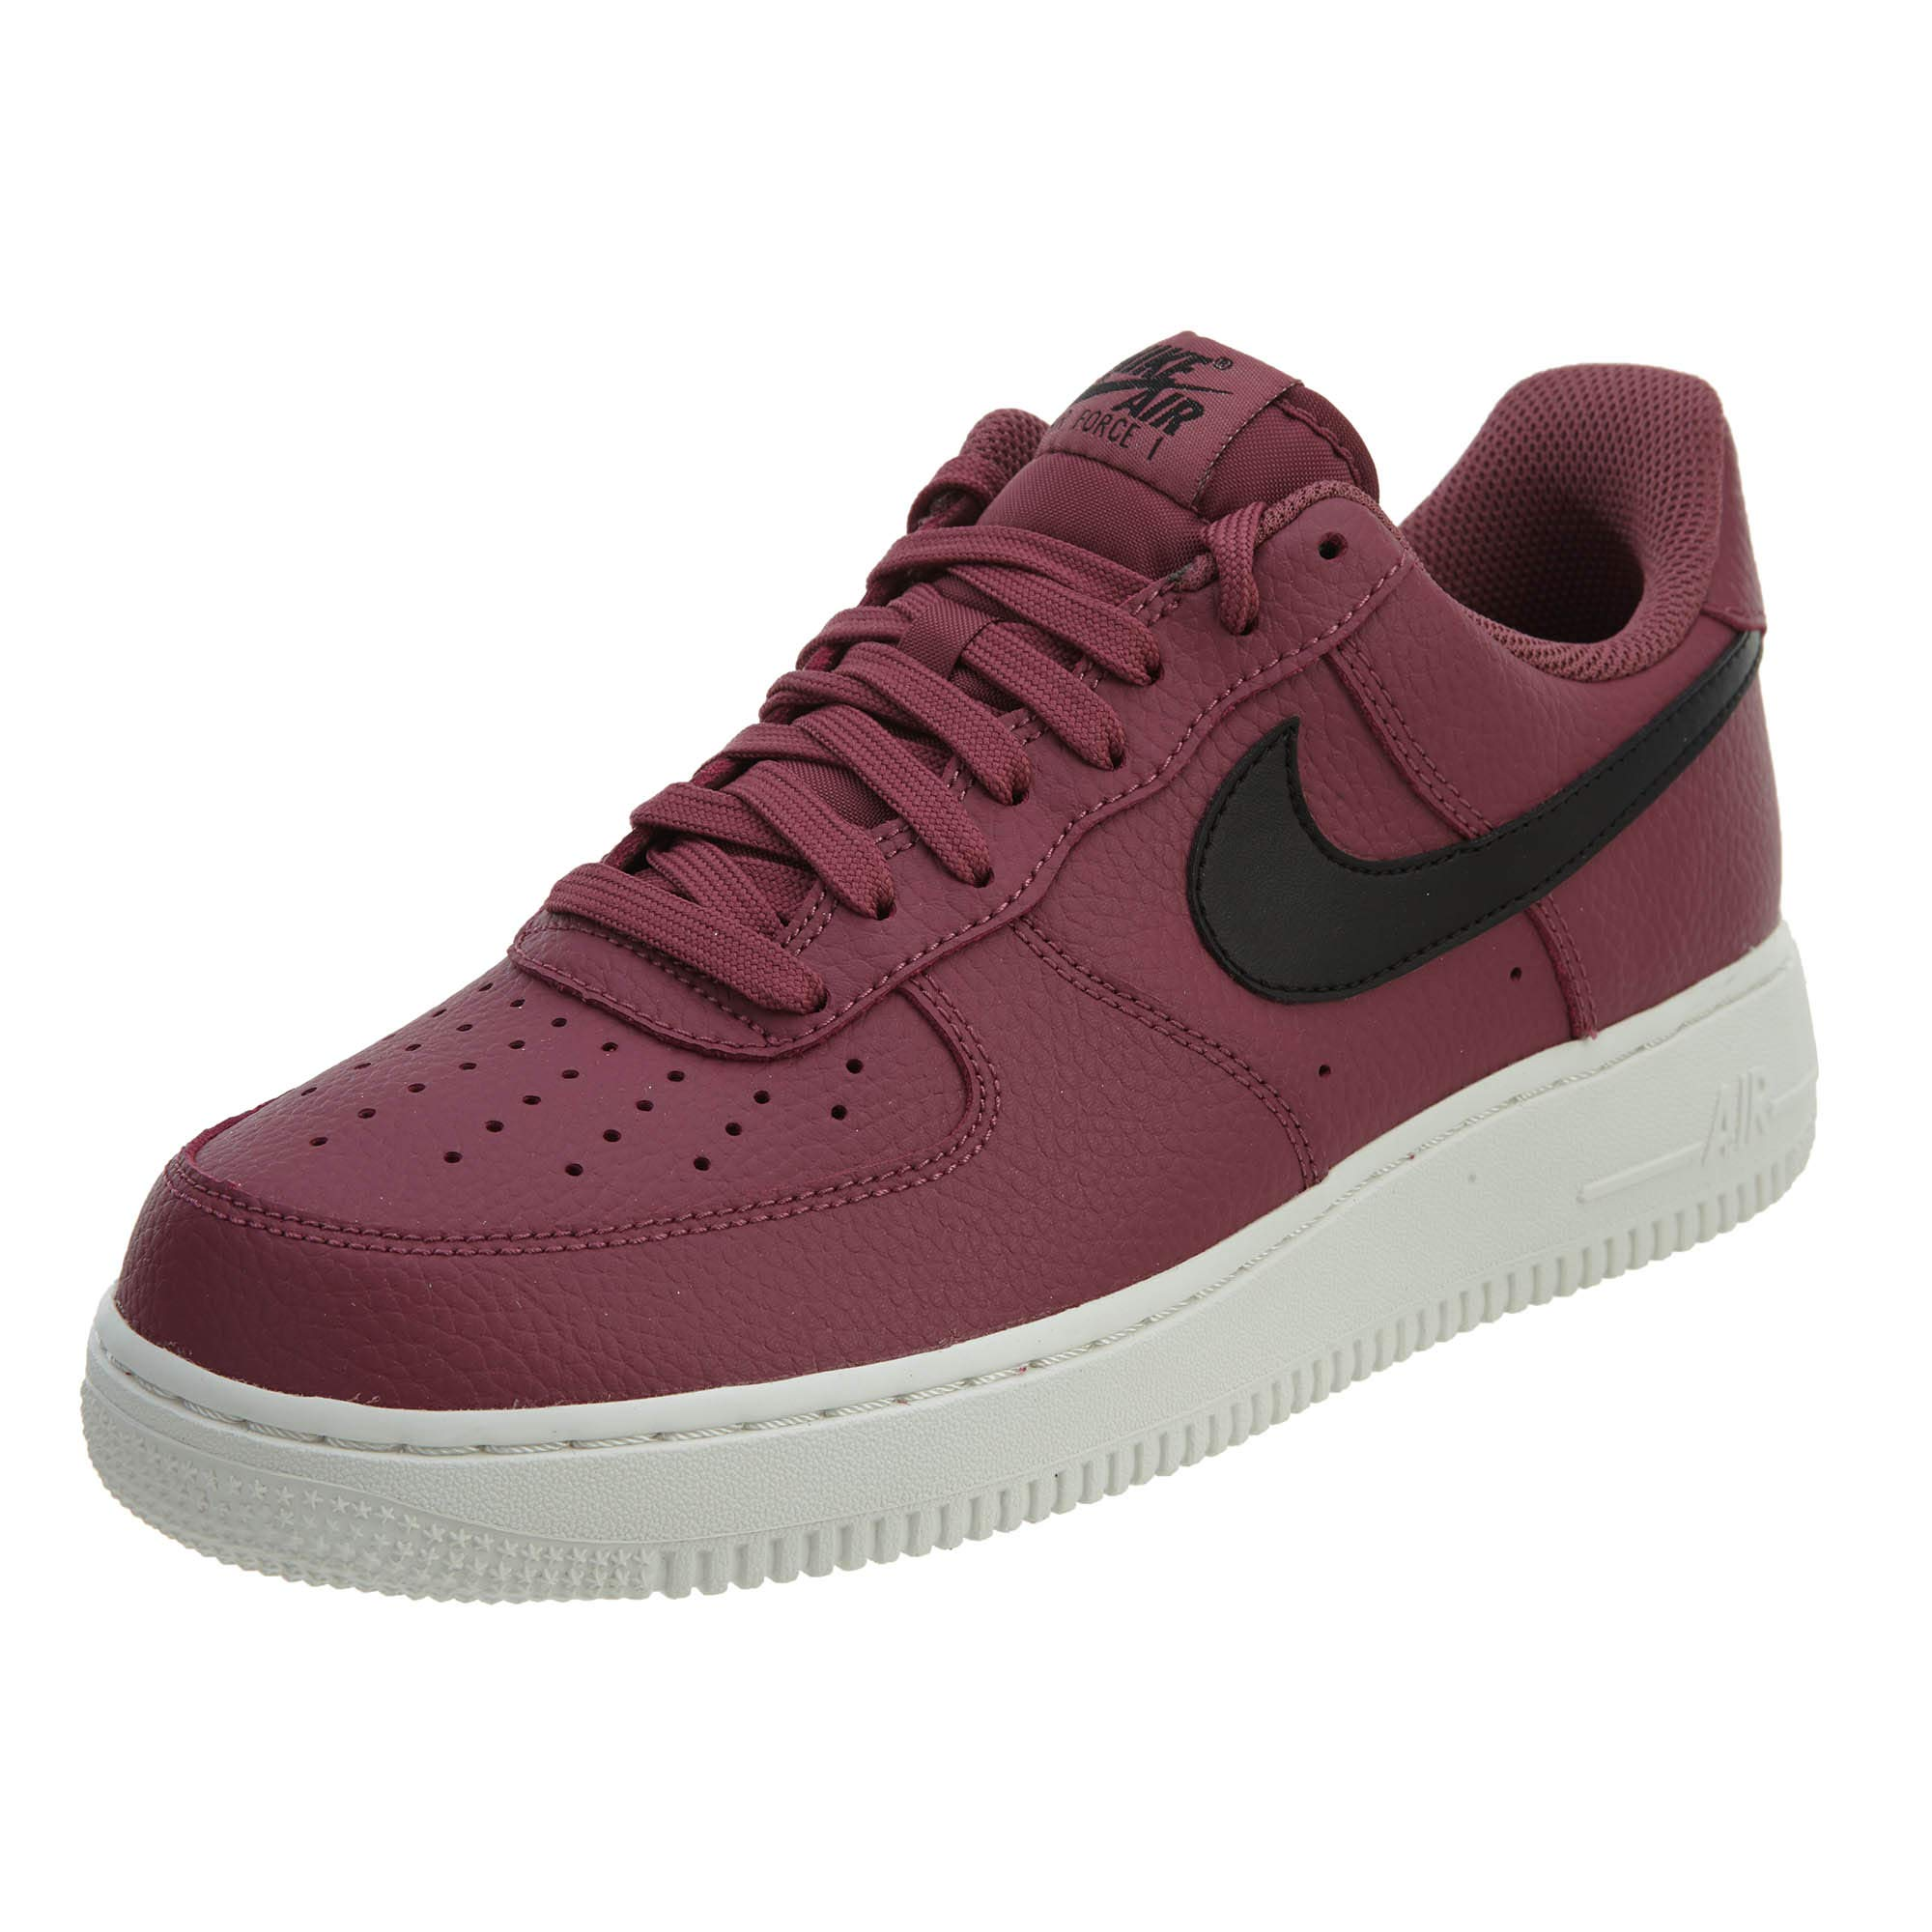 newest 9fc90 e64e8 Nike Men s Air Force 1 Low Sneaker